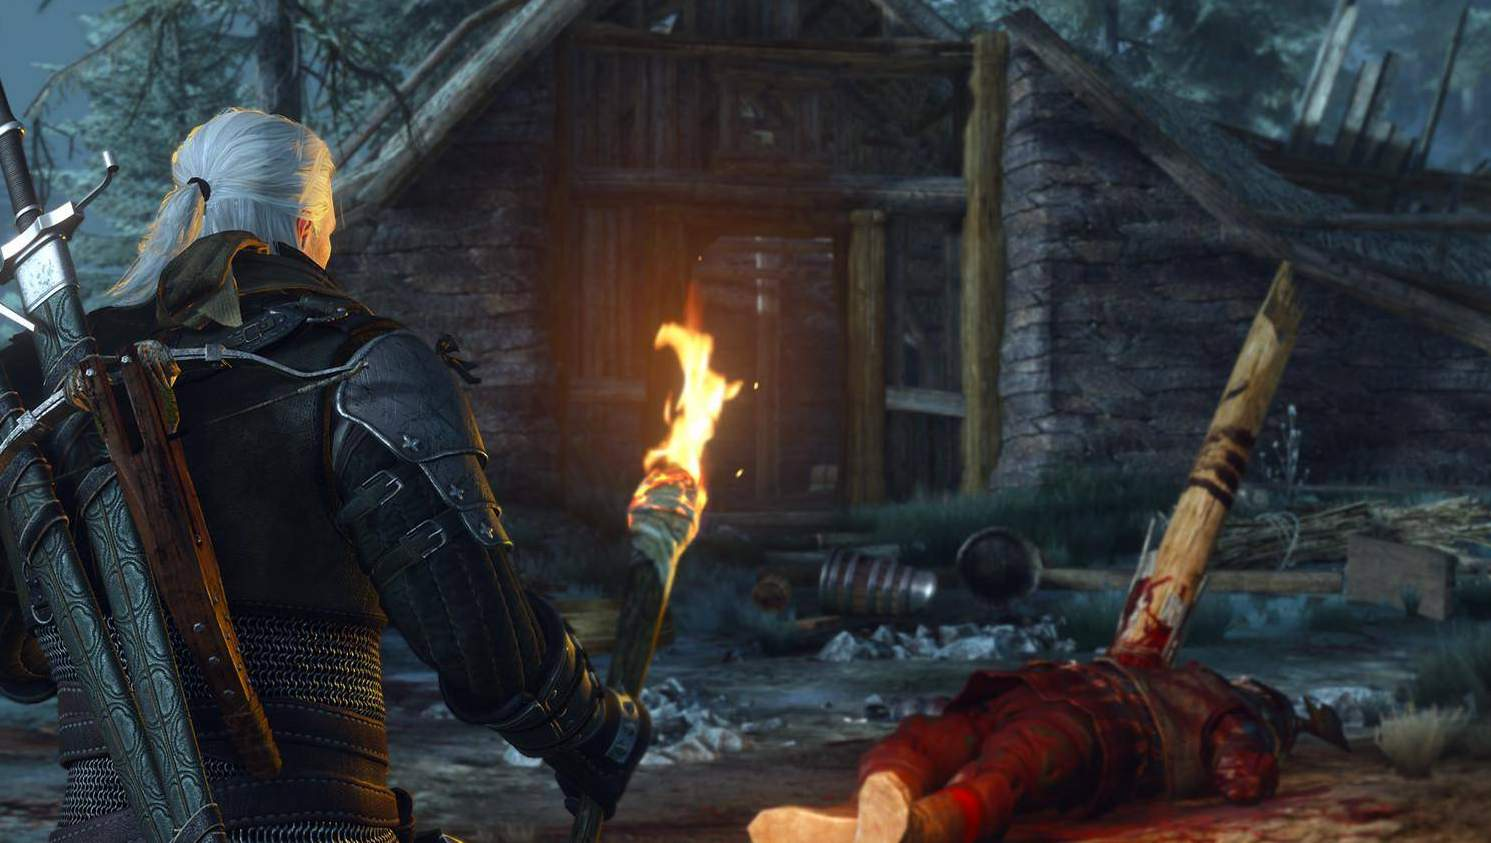 The Witcher 3: Wild Hunt - Console Commands (Cheat Codes)